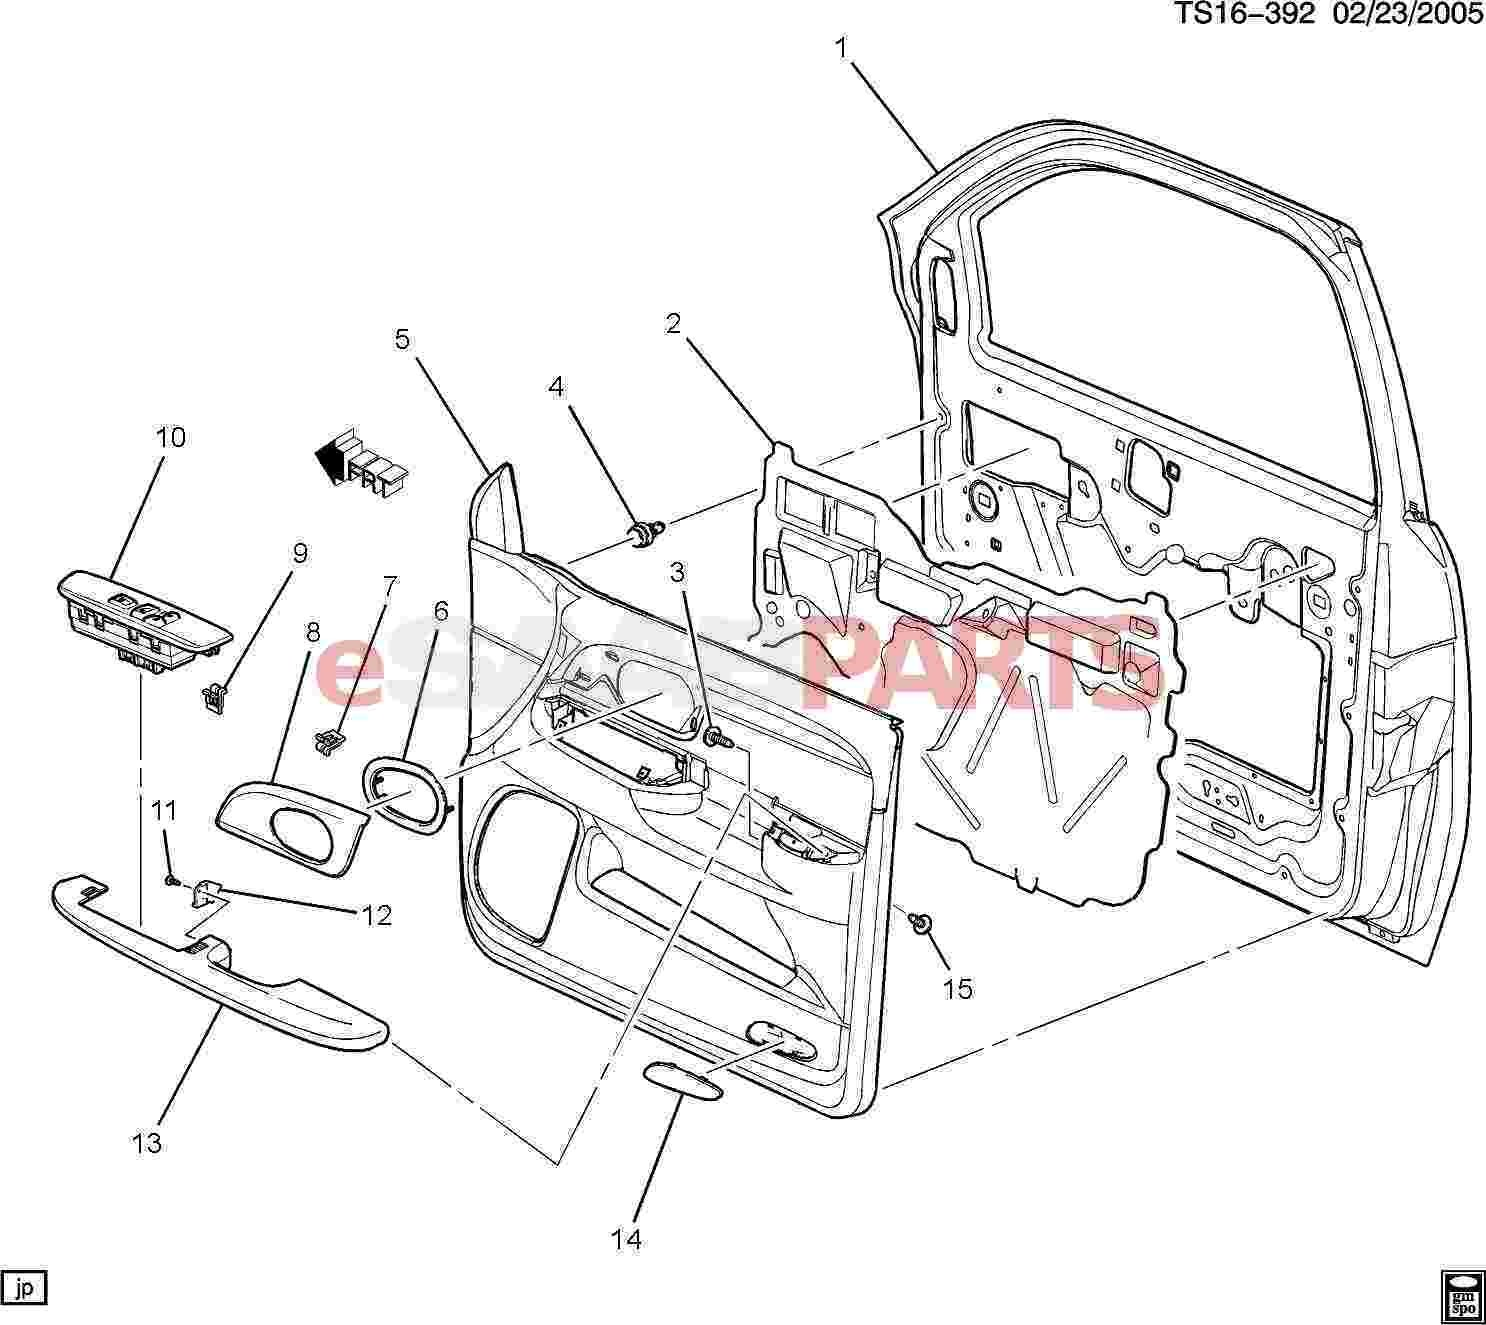 Diagram Of Car Body Parts Esaabparts Saab 9 7x Car Body Internal Parts Door Parts Of Diagram Of Car Body Parts 2003 Cadillac Cts Serpentine Belt Diagram Auto